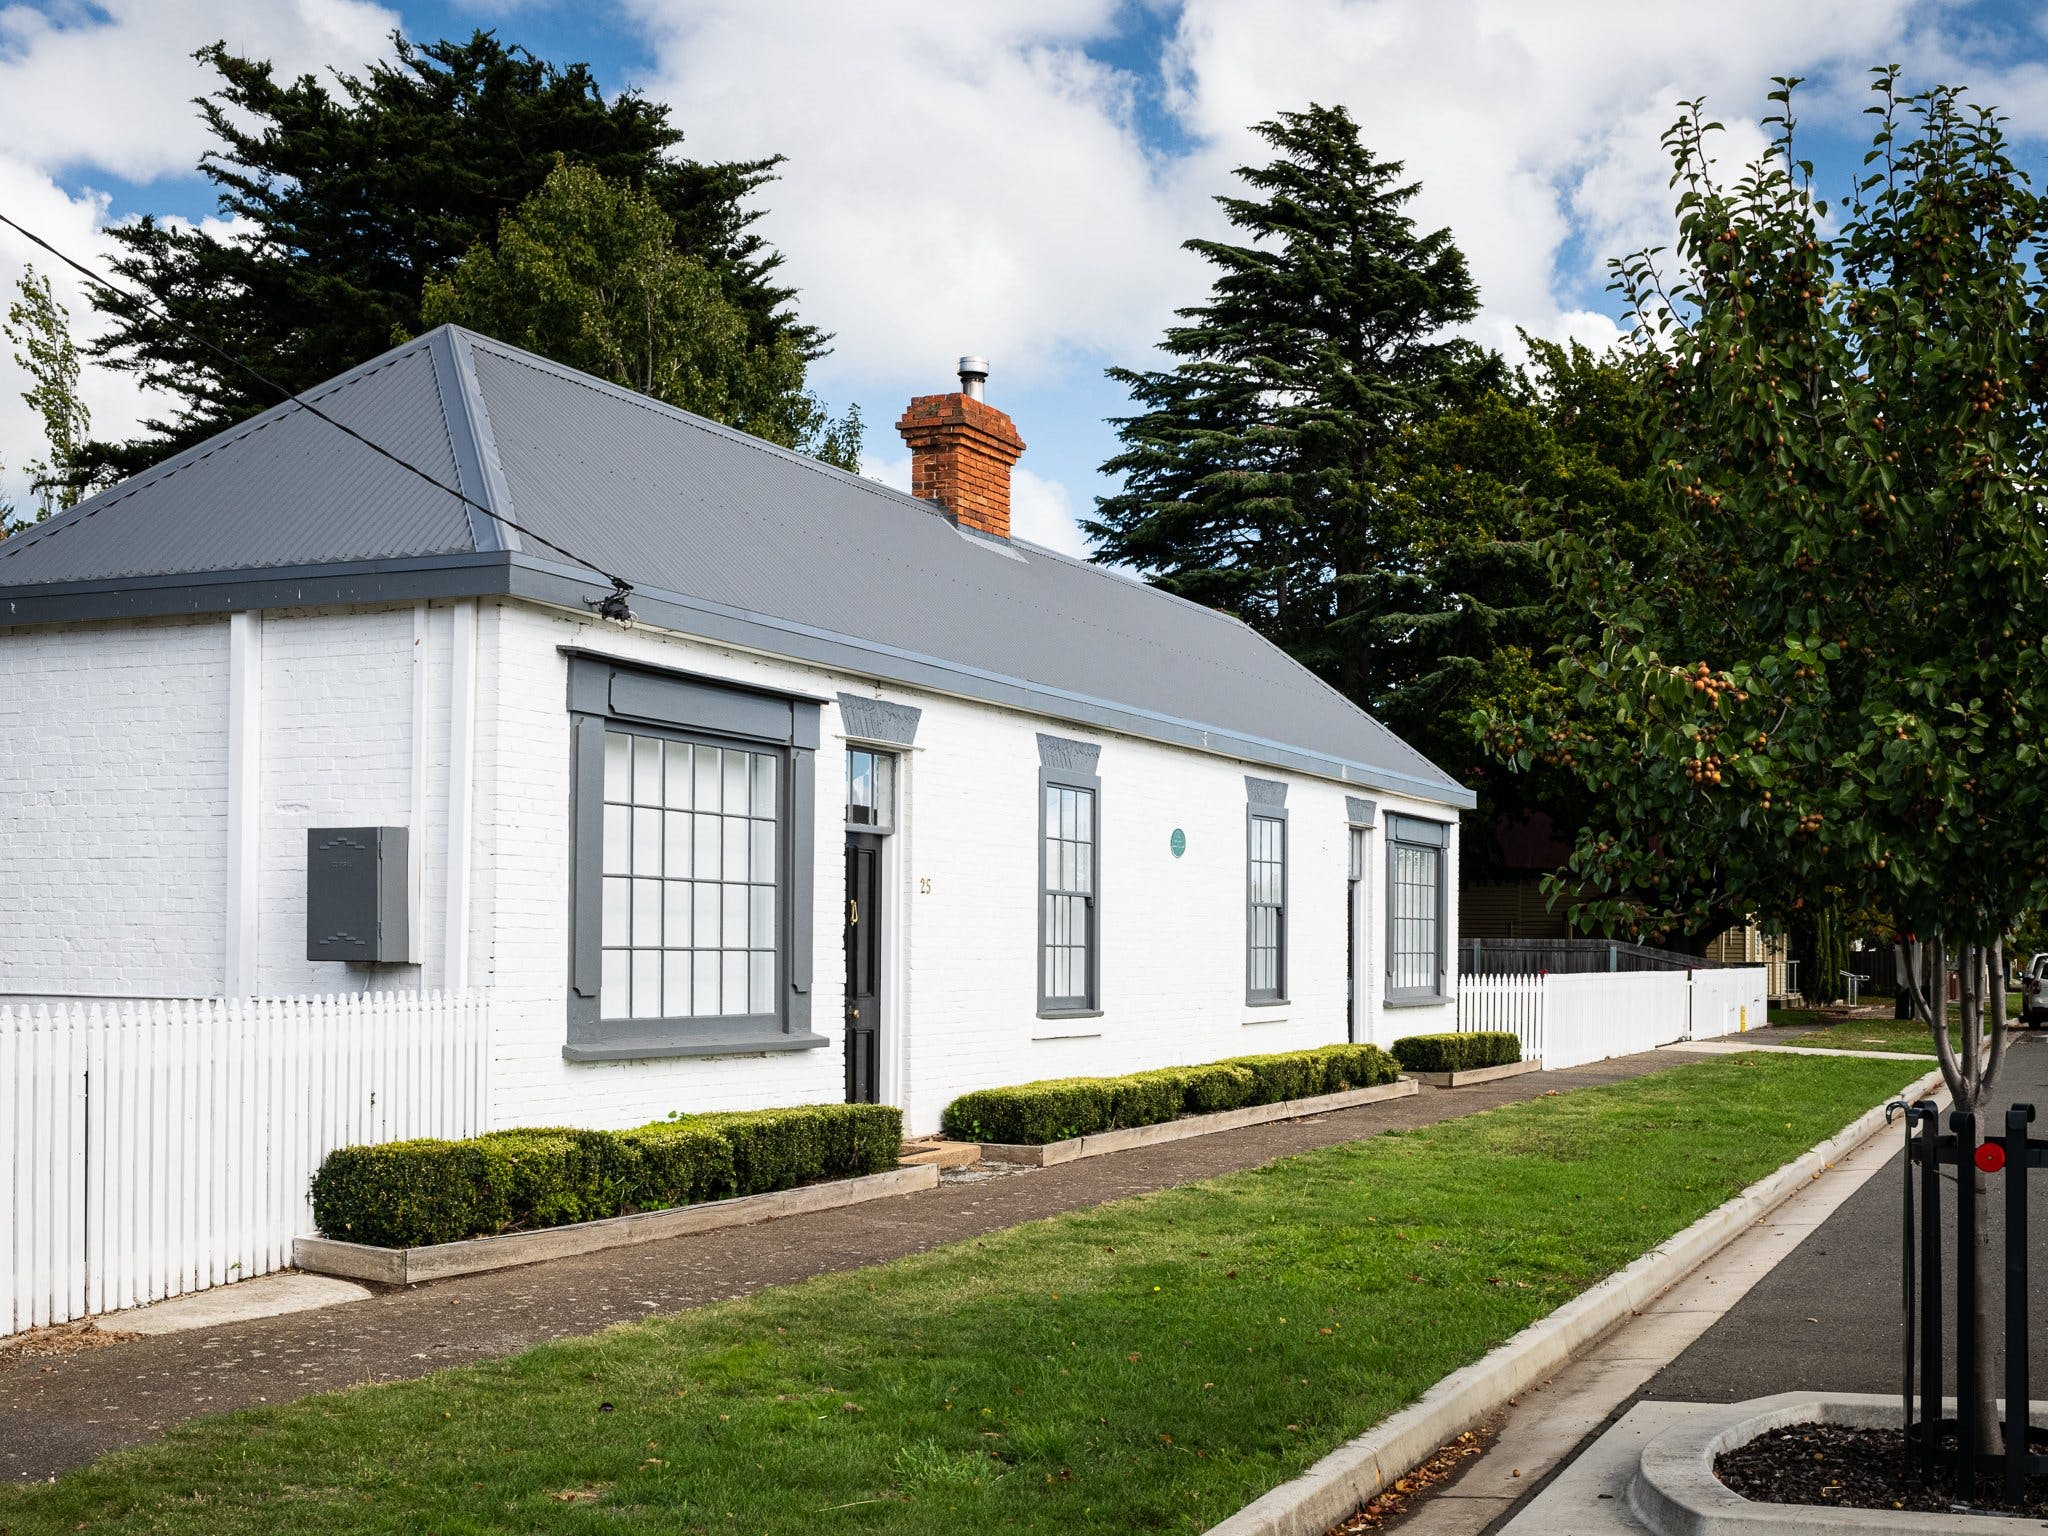 Historic Houses of Carrick  BIG13 Launceston Holiday Park  BIG13